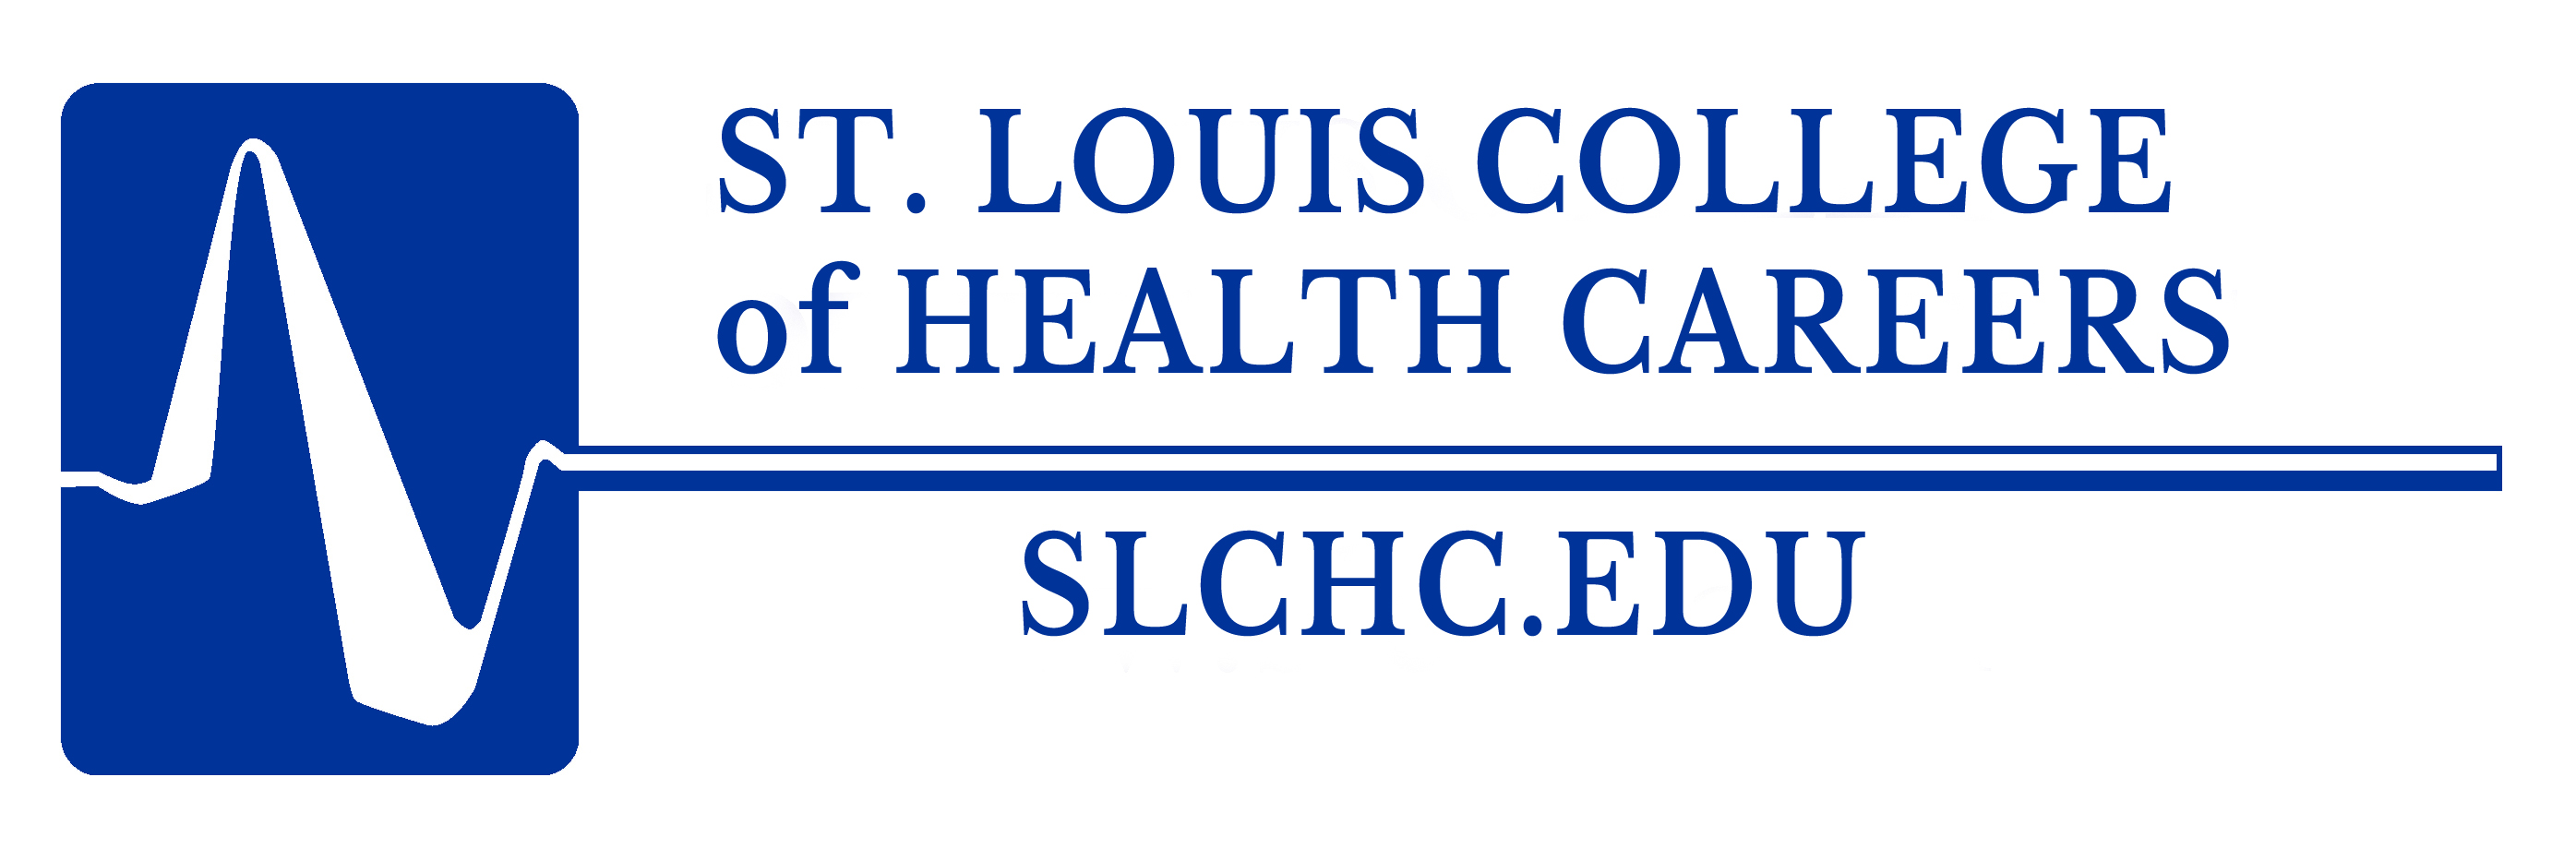 St. Louis College of Health Careers Logo